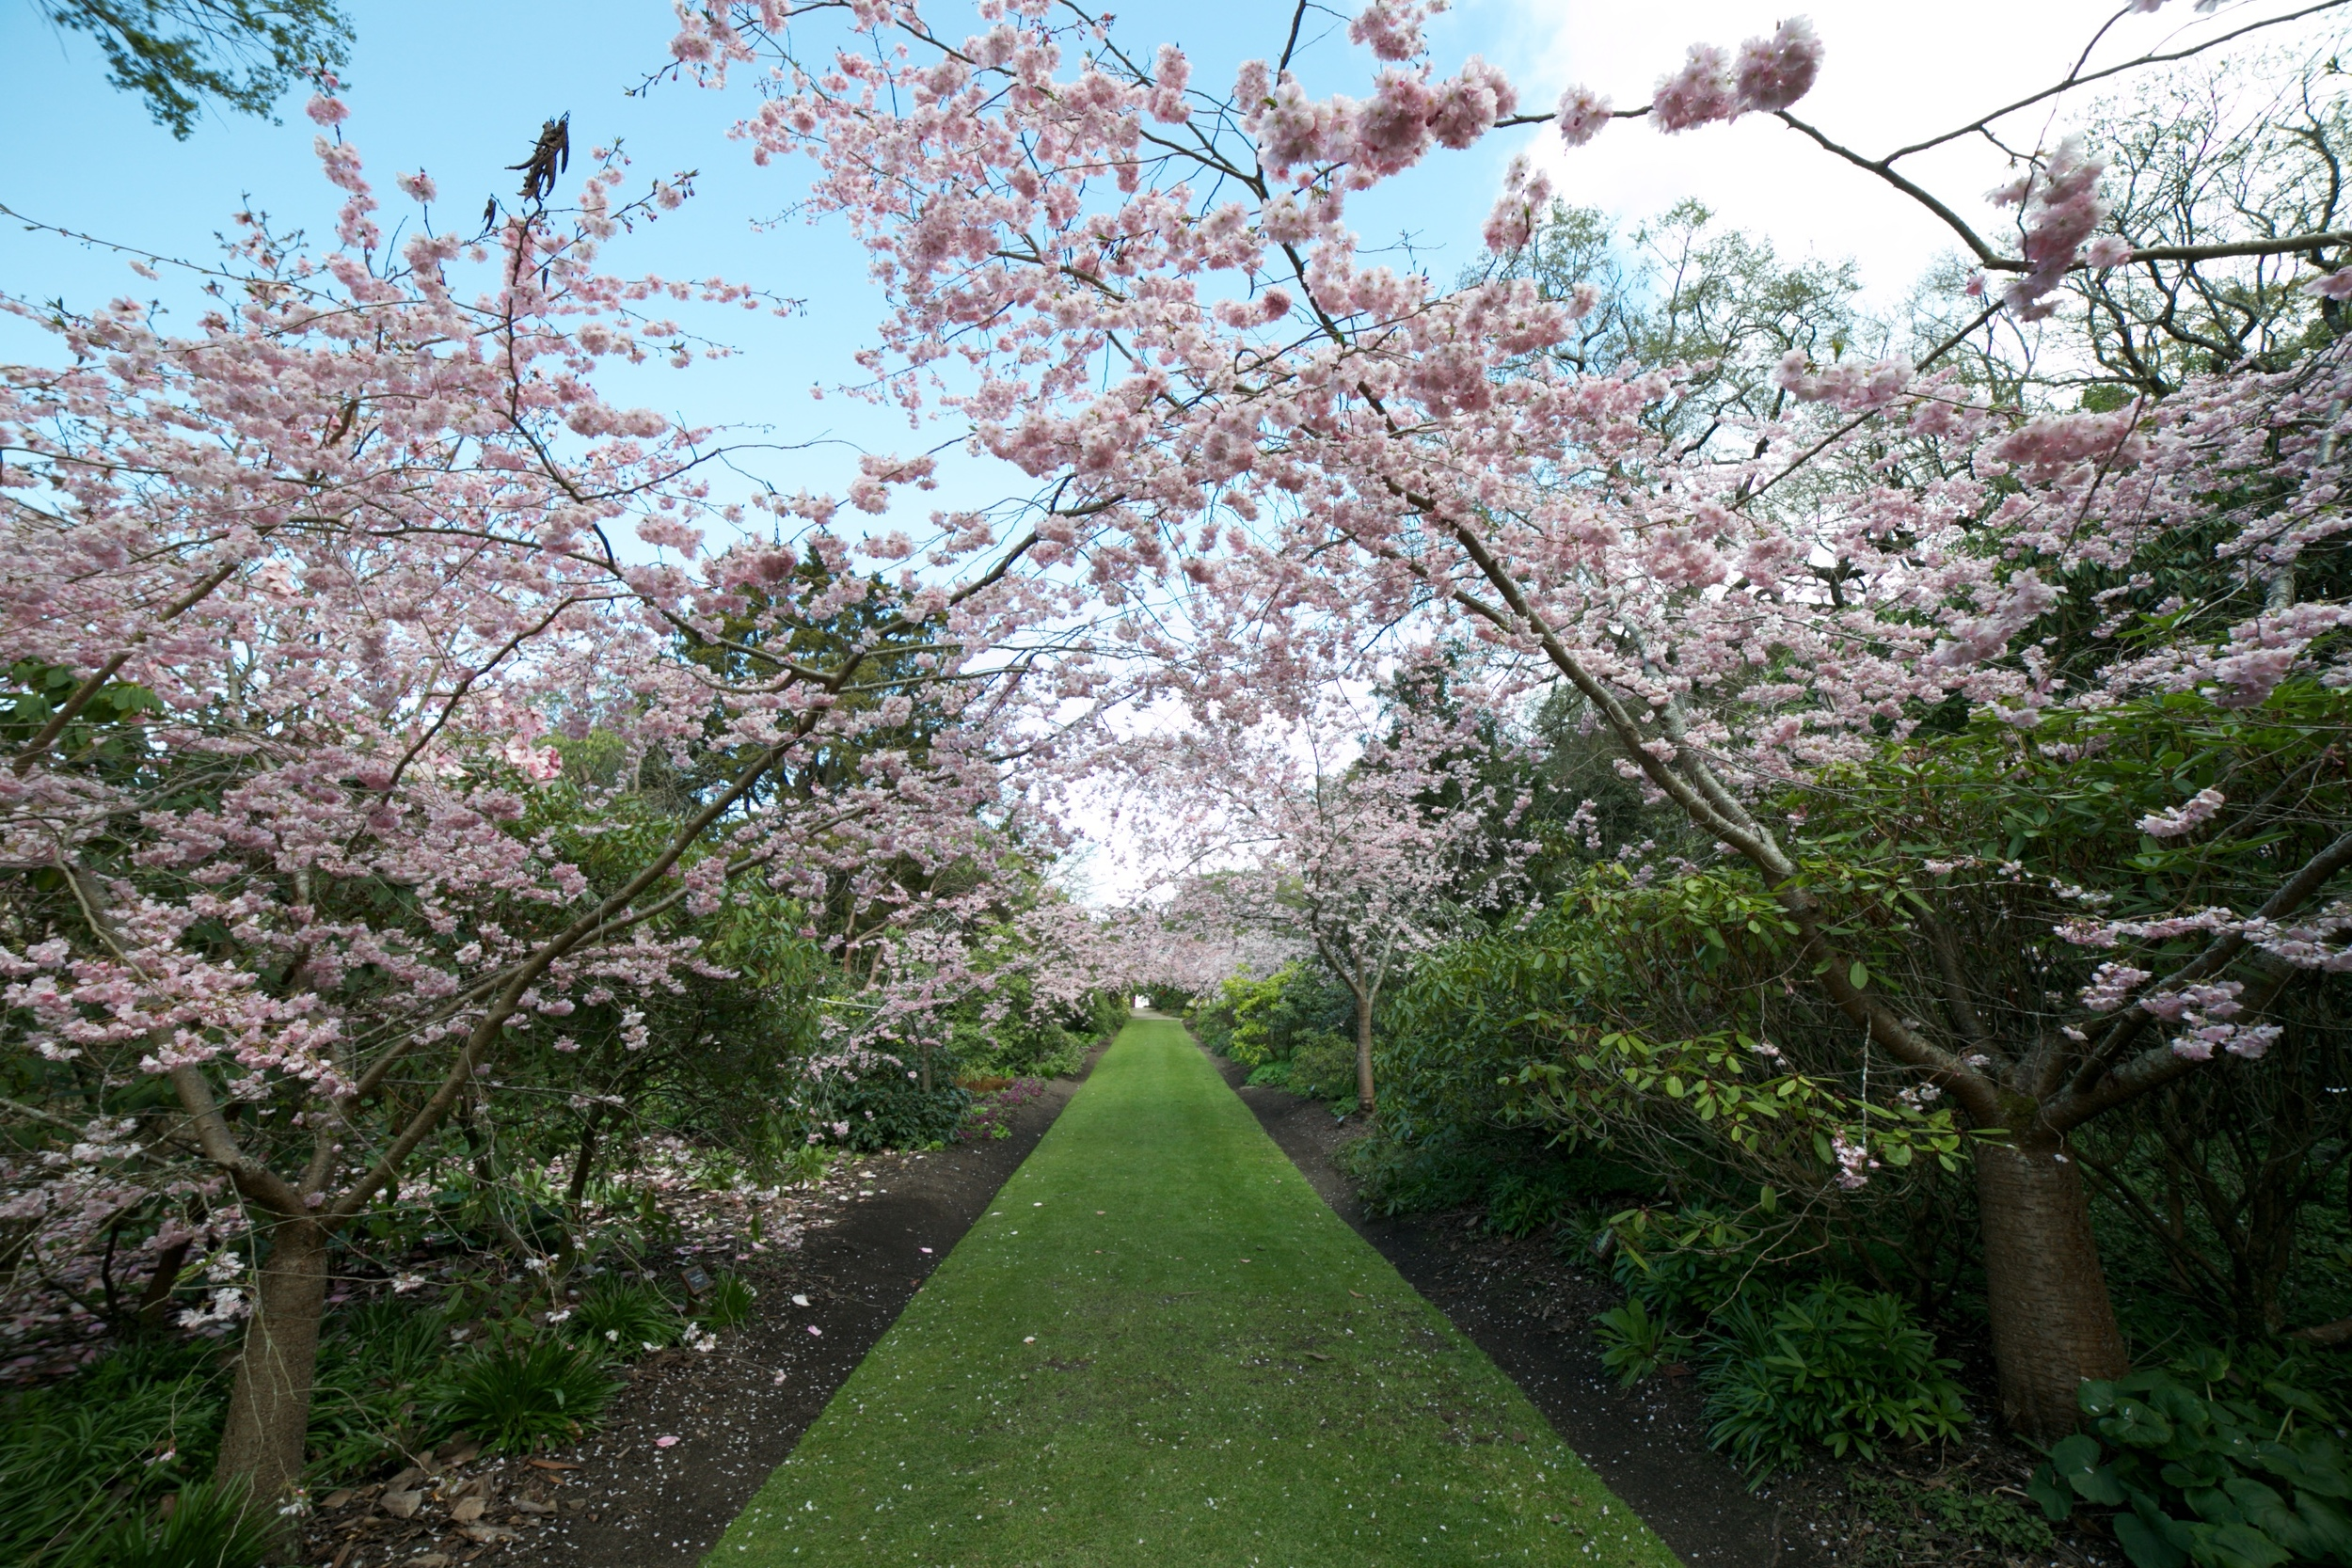 Cherry tree lane in full bloom, Dunedin Botanic Gardens